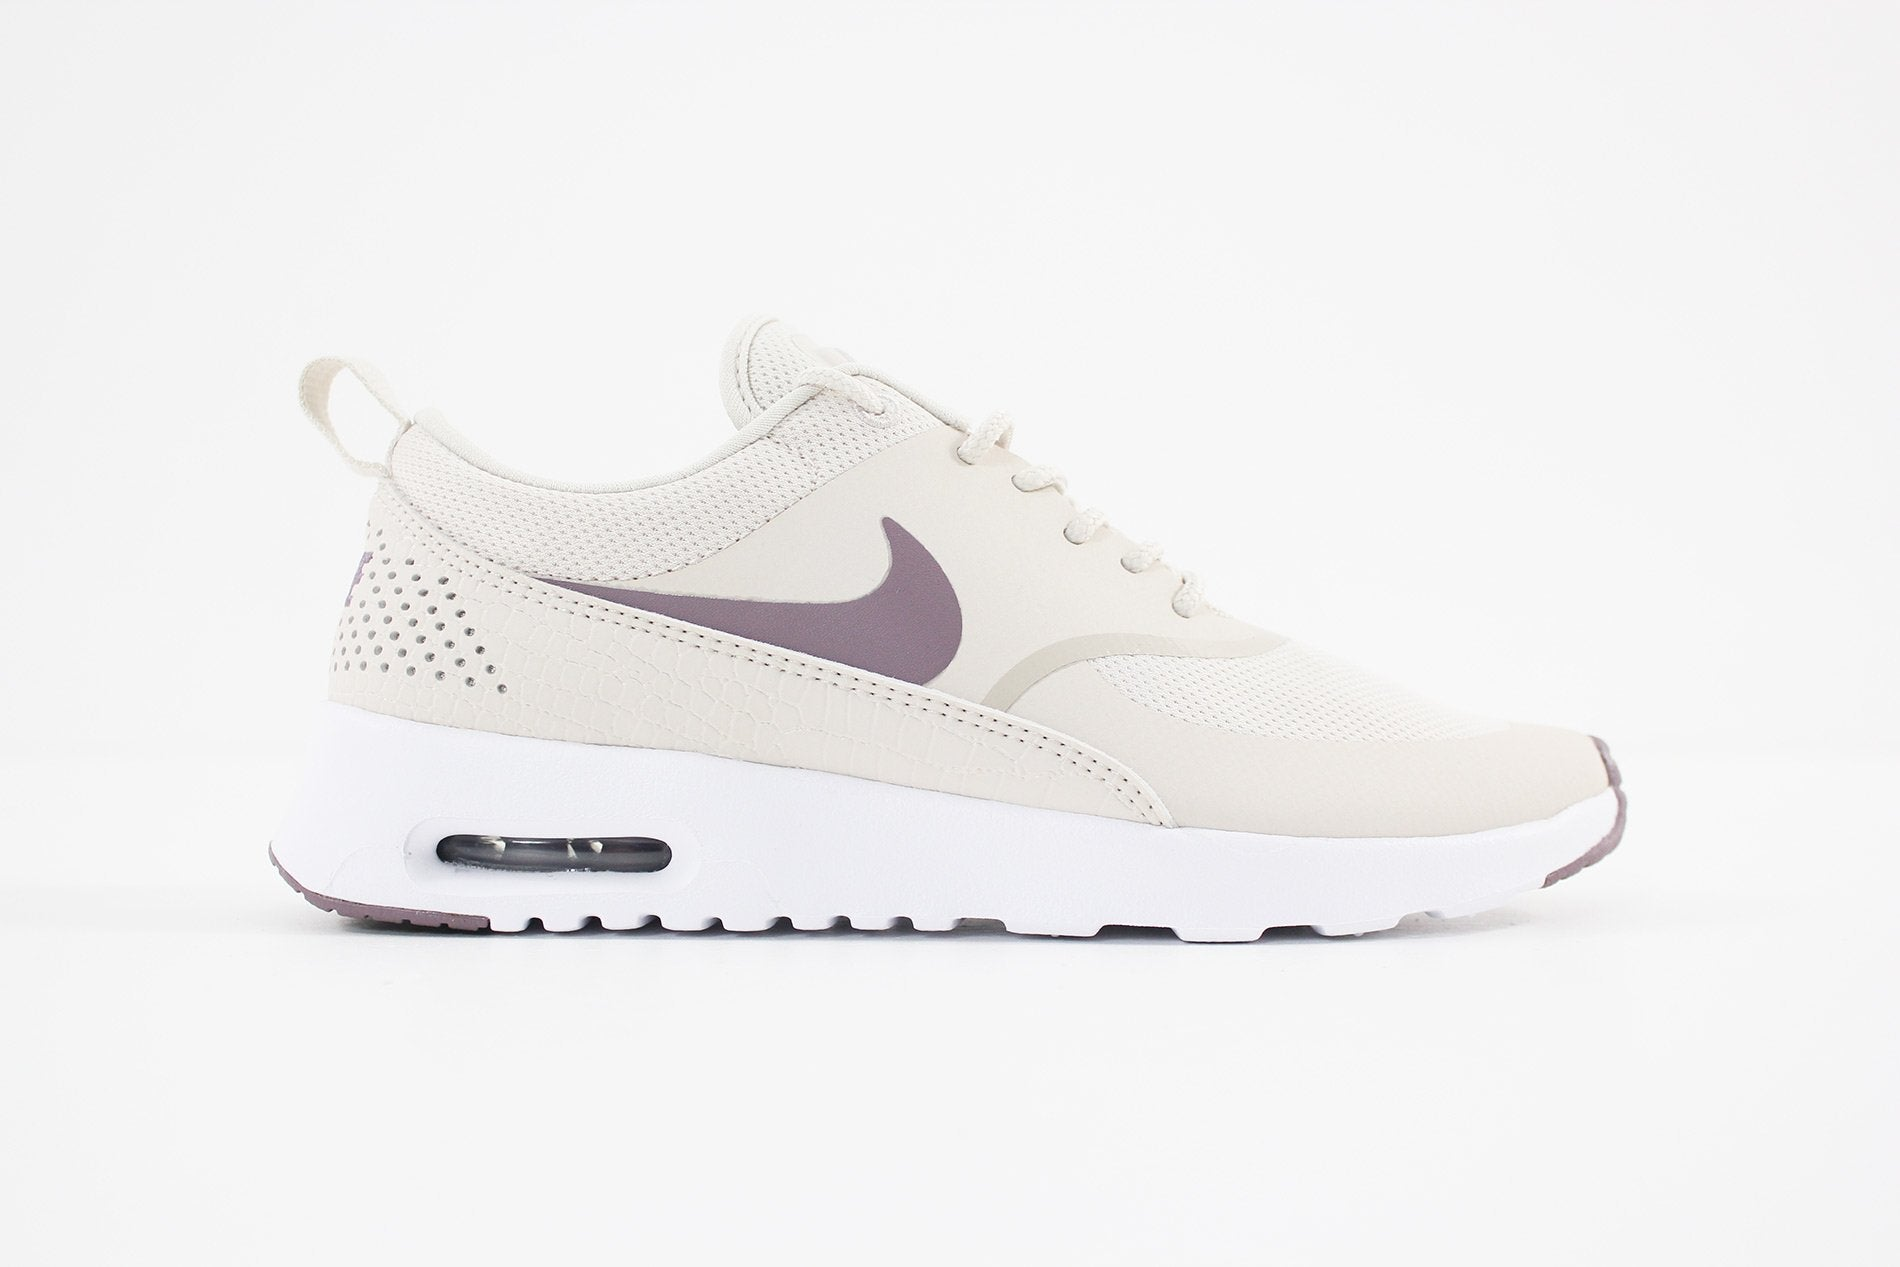 Nike Air Max Thea Shoe LT OREWOOD Women (BRNTAUPE GREY) 599409 106